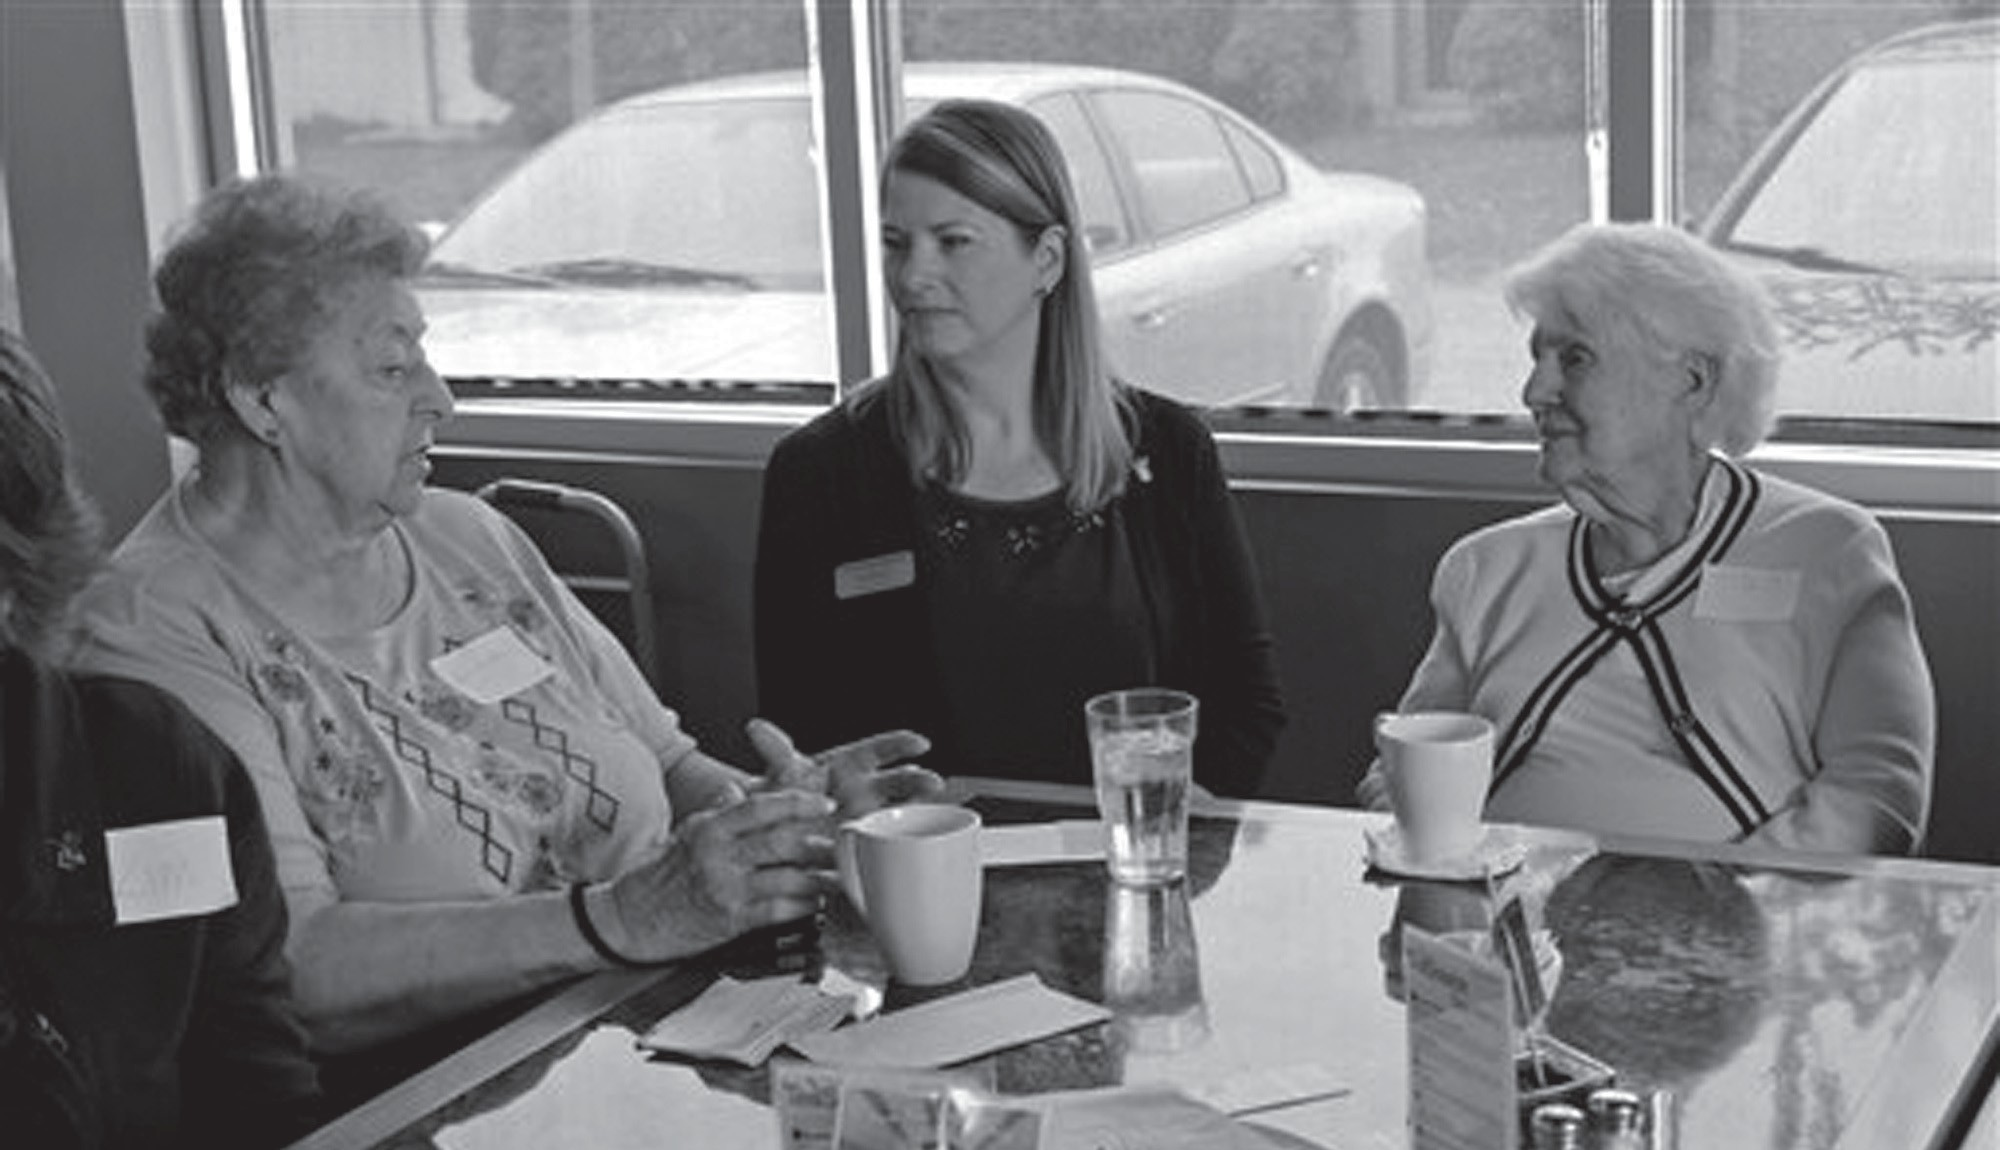 In this photo taken May 20 at Connections Cafe in Watertown, Wis., Shirley Strysick, right, 90, who suffers from dementia, talks with Stephanie Masche, center, from the Heritage Homes assisted living facility, and an unidentified woman during a social and support group for those with the disease and their caregivers.